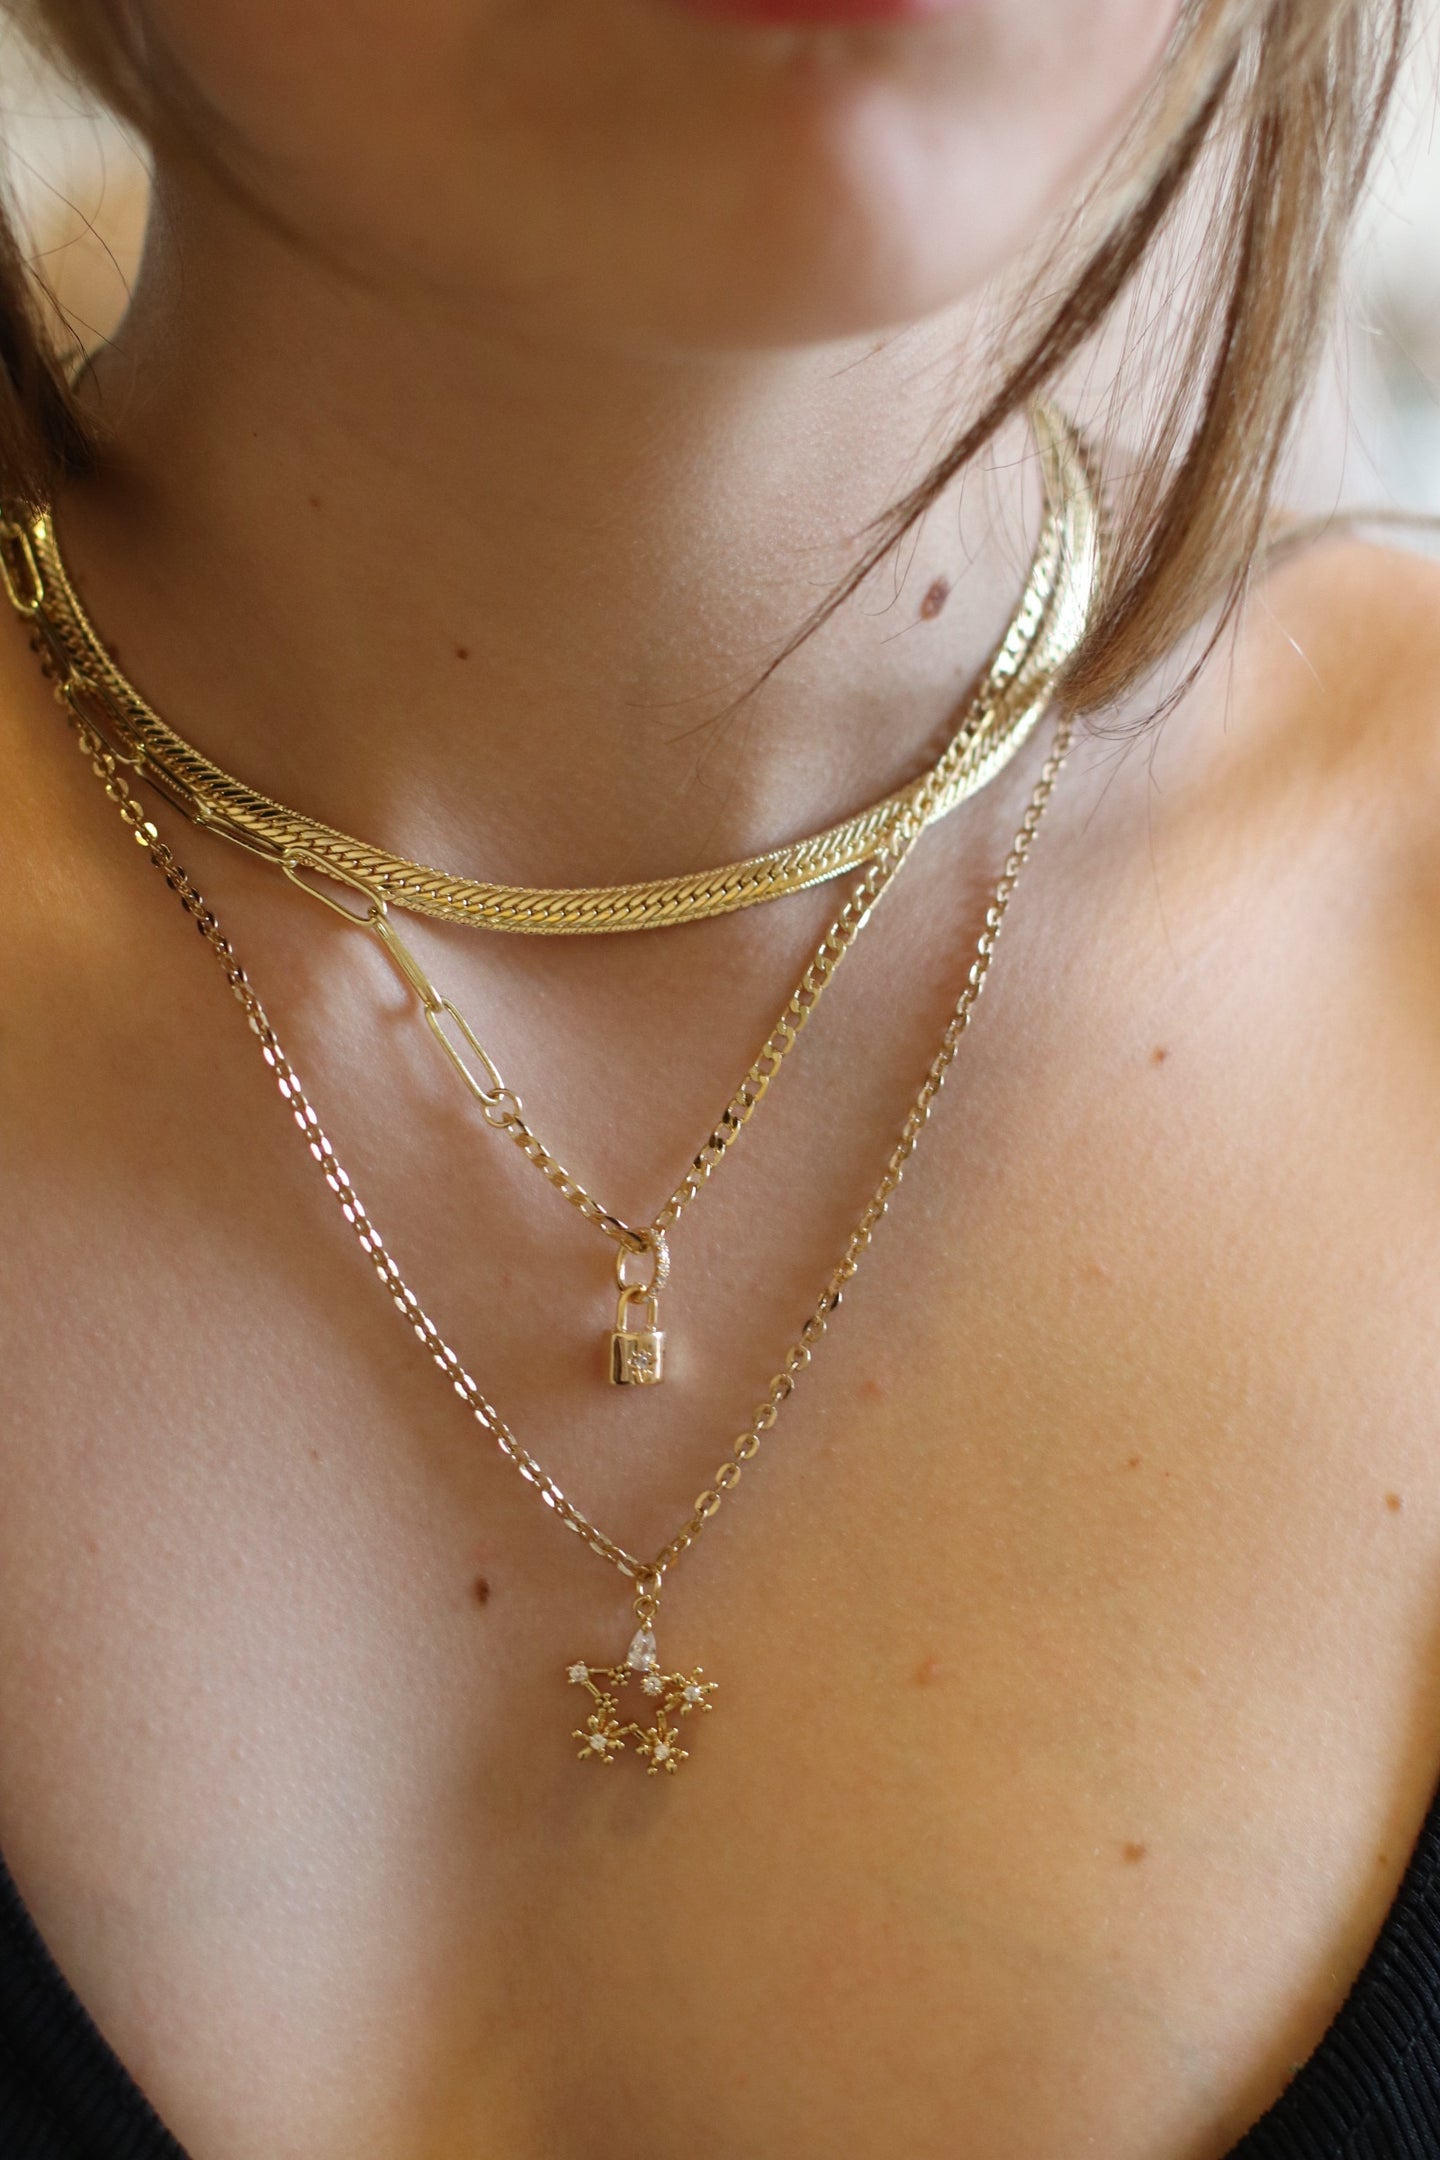 The Snake Chain Choker